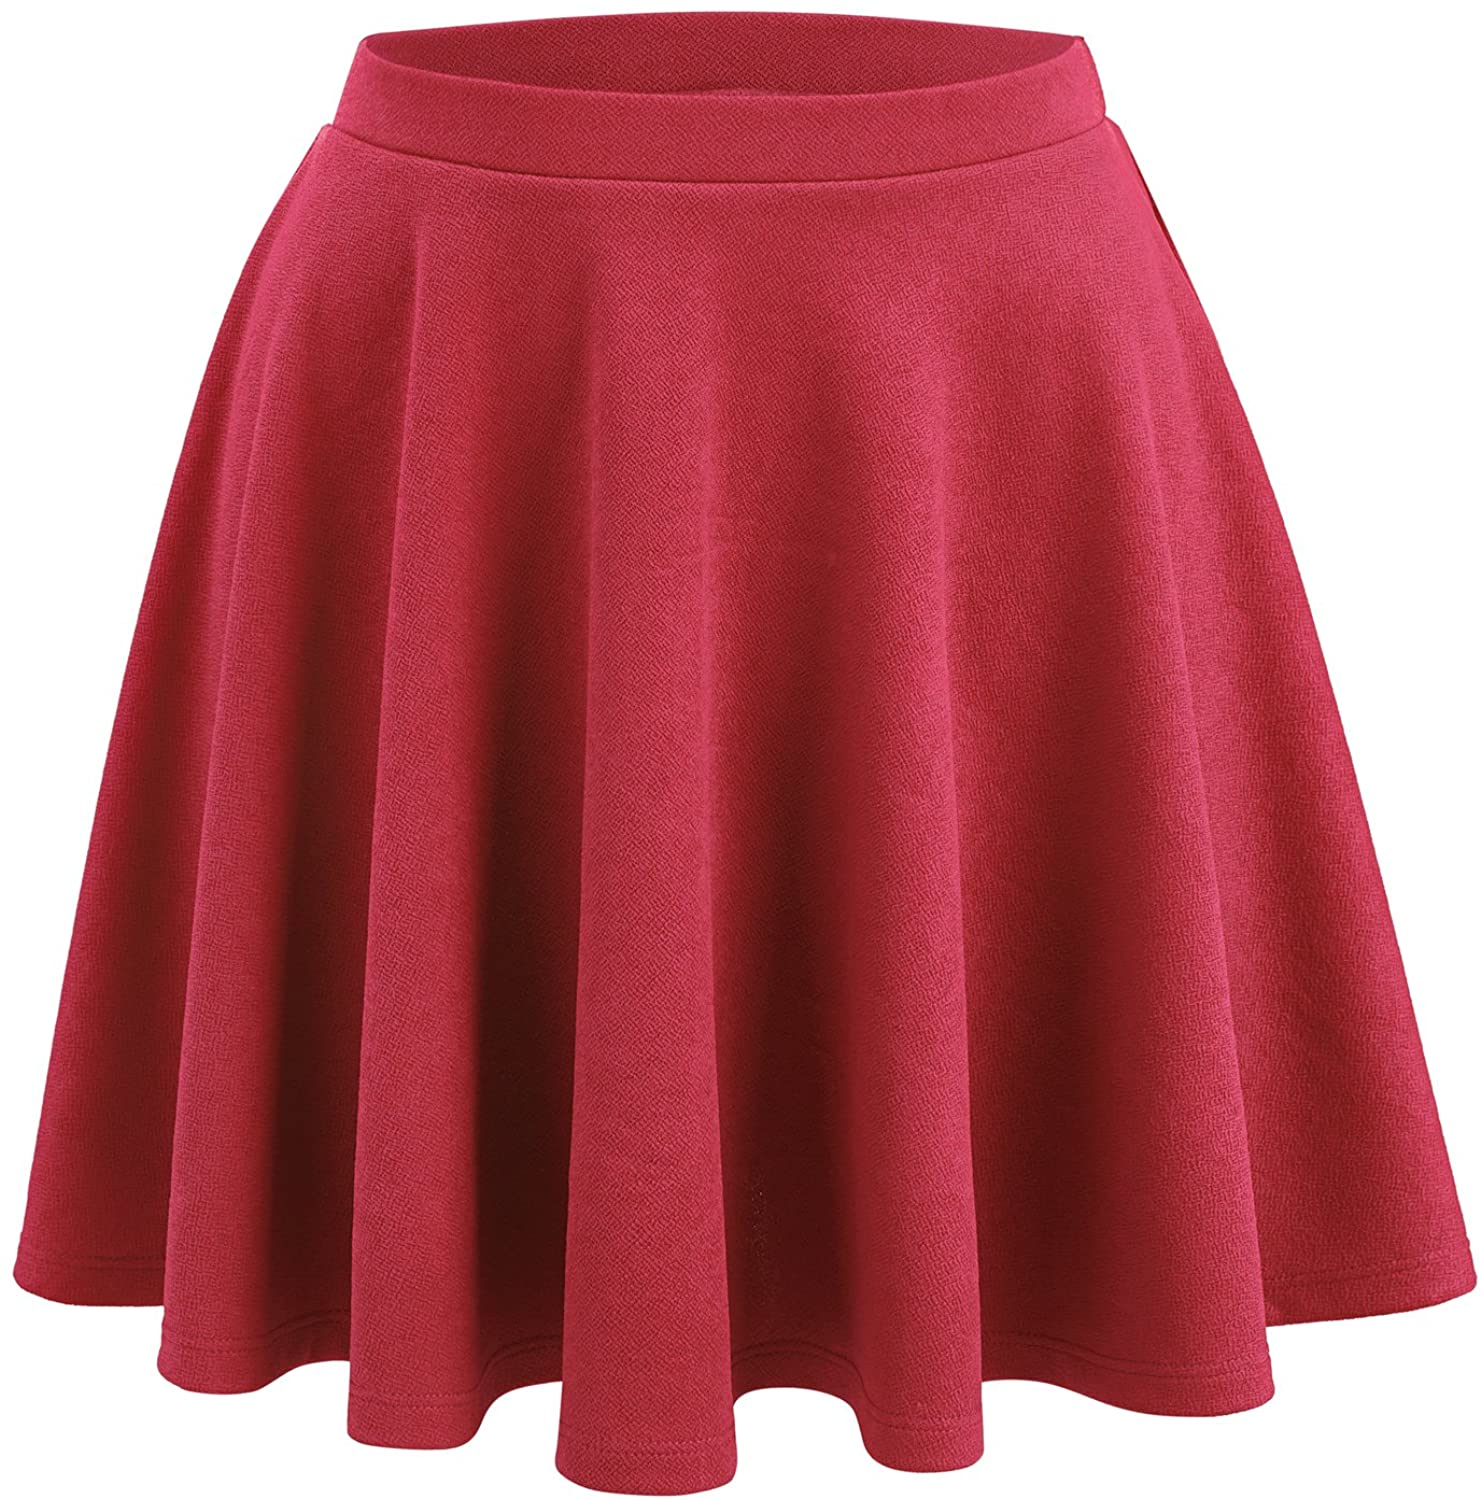 WB1580 Womens Verstaile Stretchy Flared Casual Skater Skirt - Made in USA XL Coral